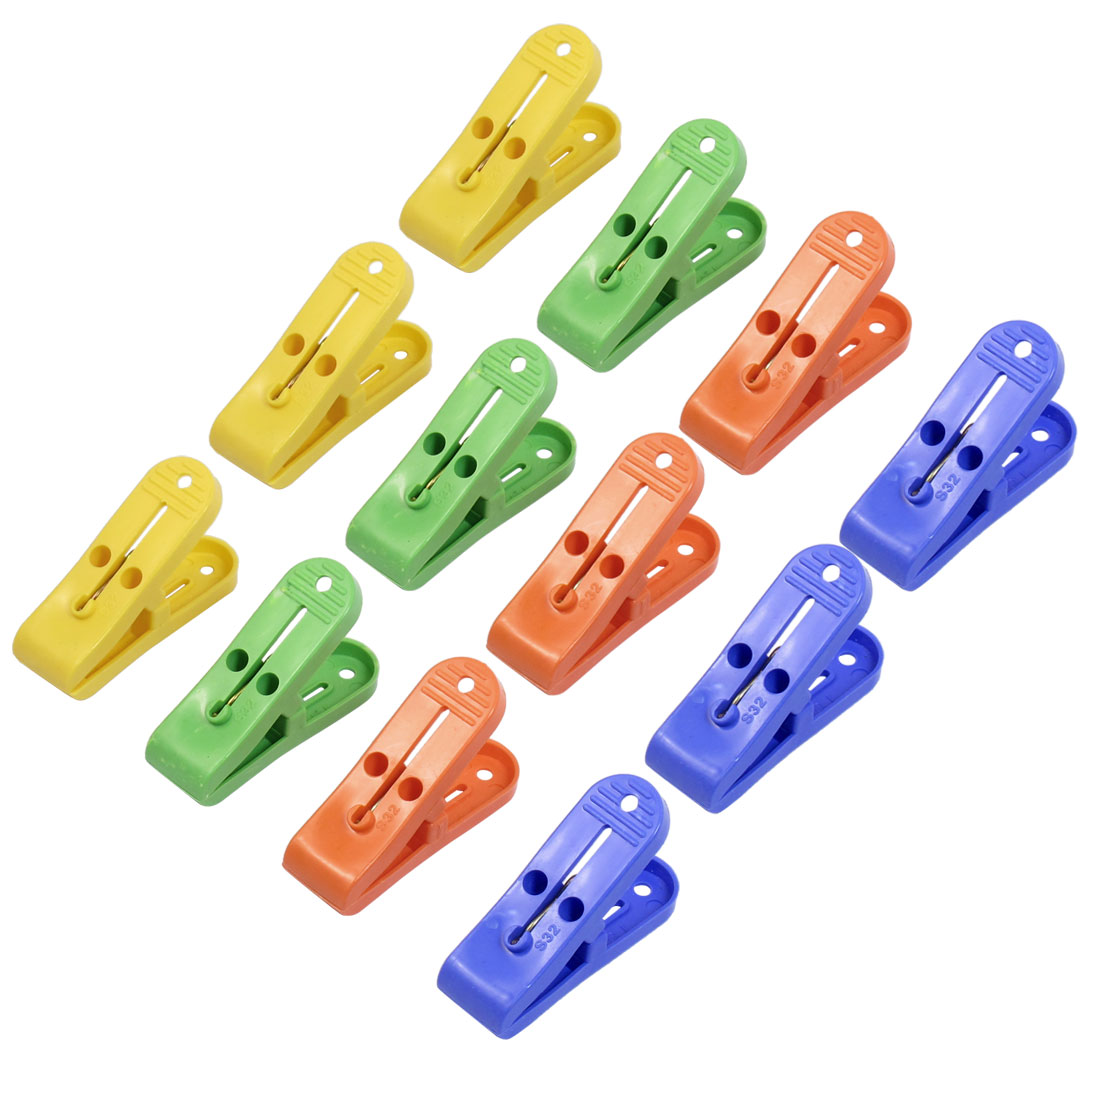 12 x Home Portable Plastic Multi Color Towels Clothes Pins Pegs